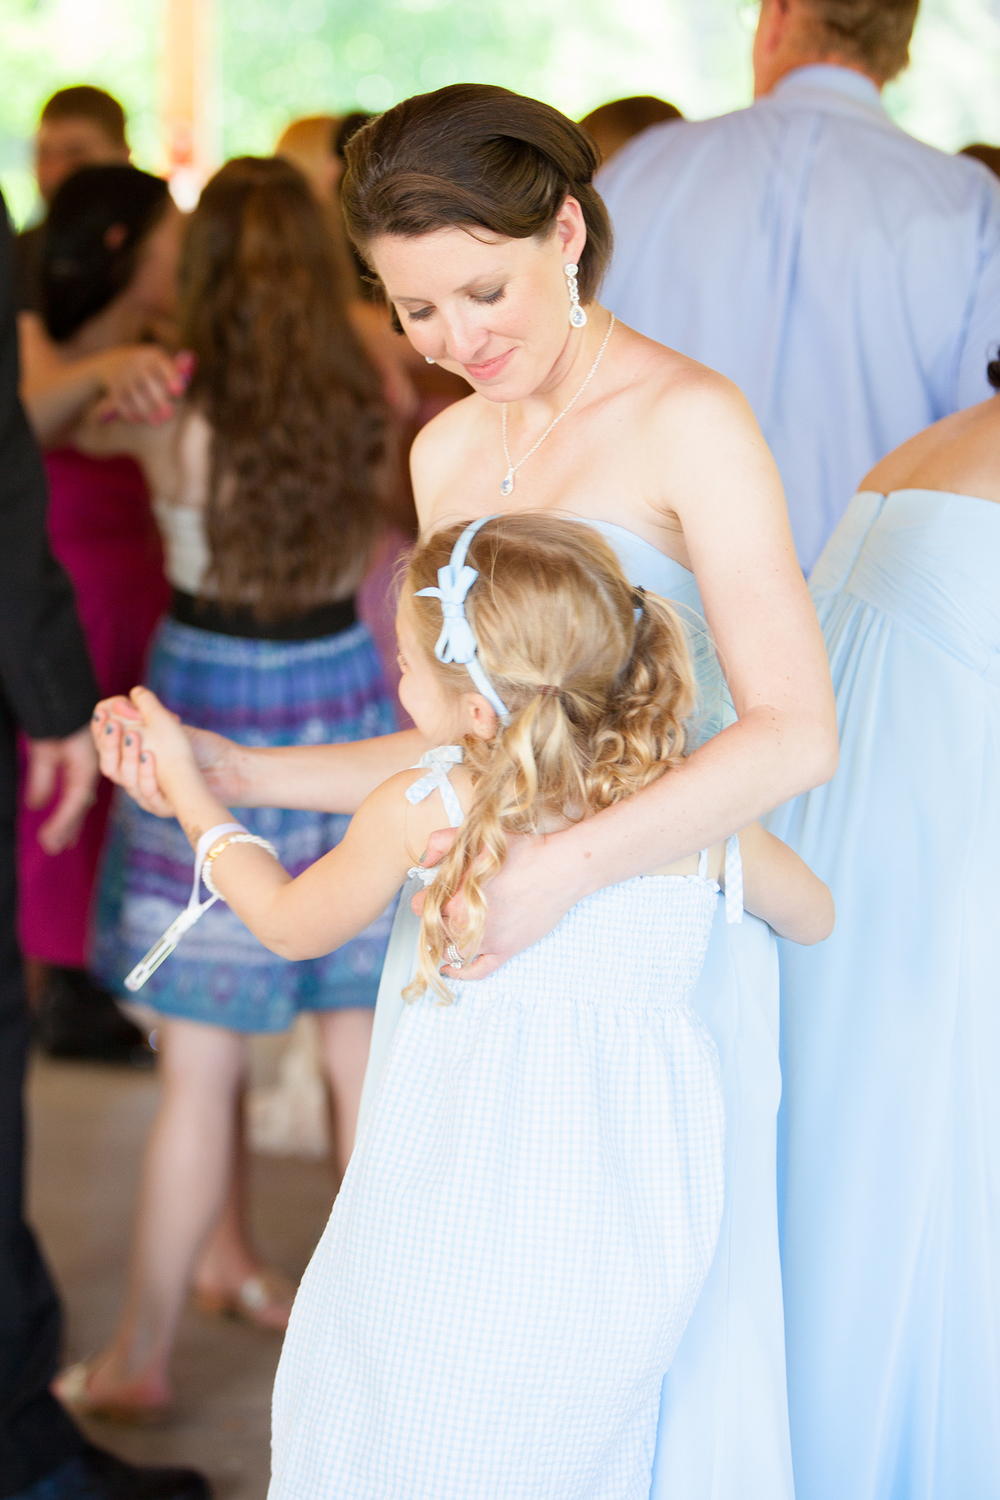 Girl Dancing with Mom at a Wedding